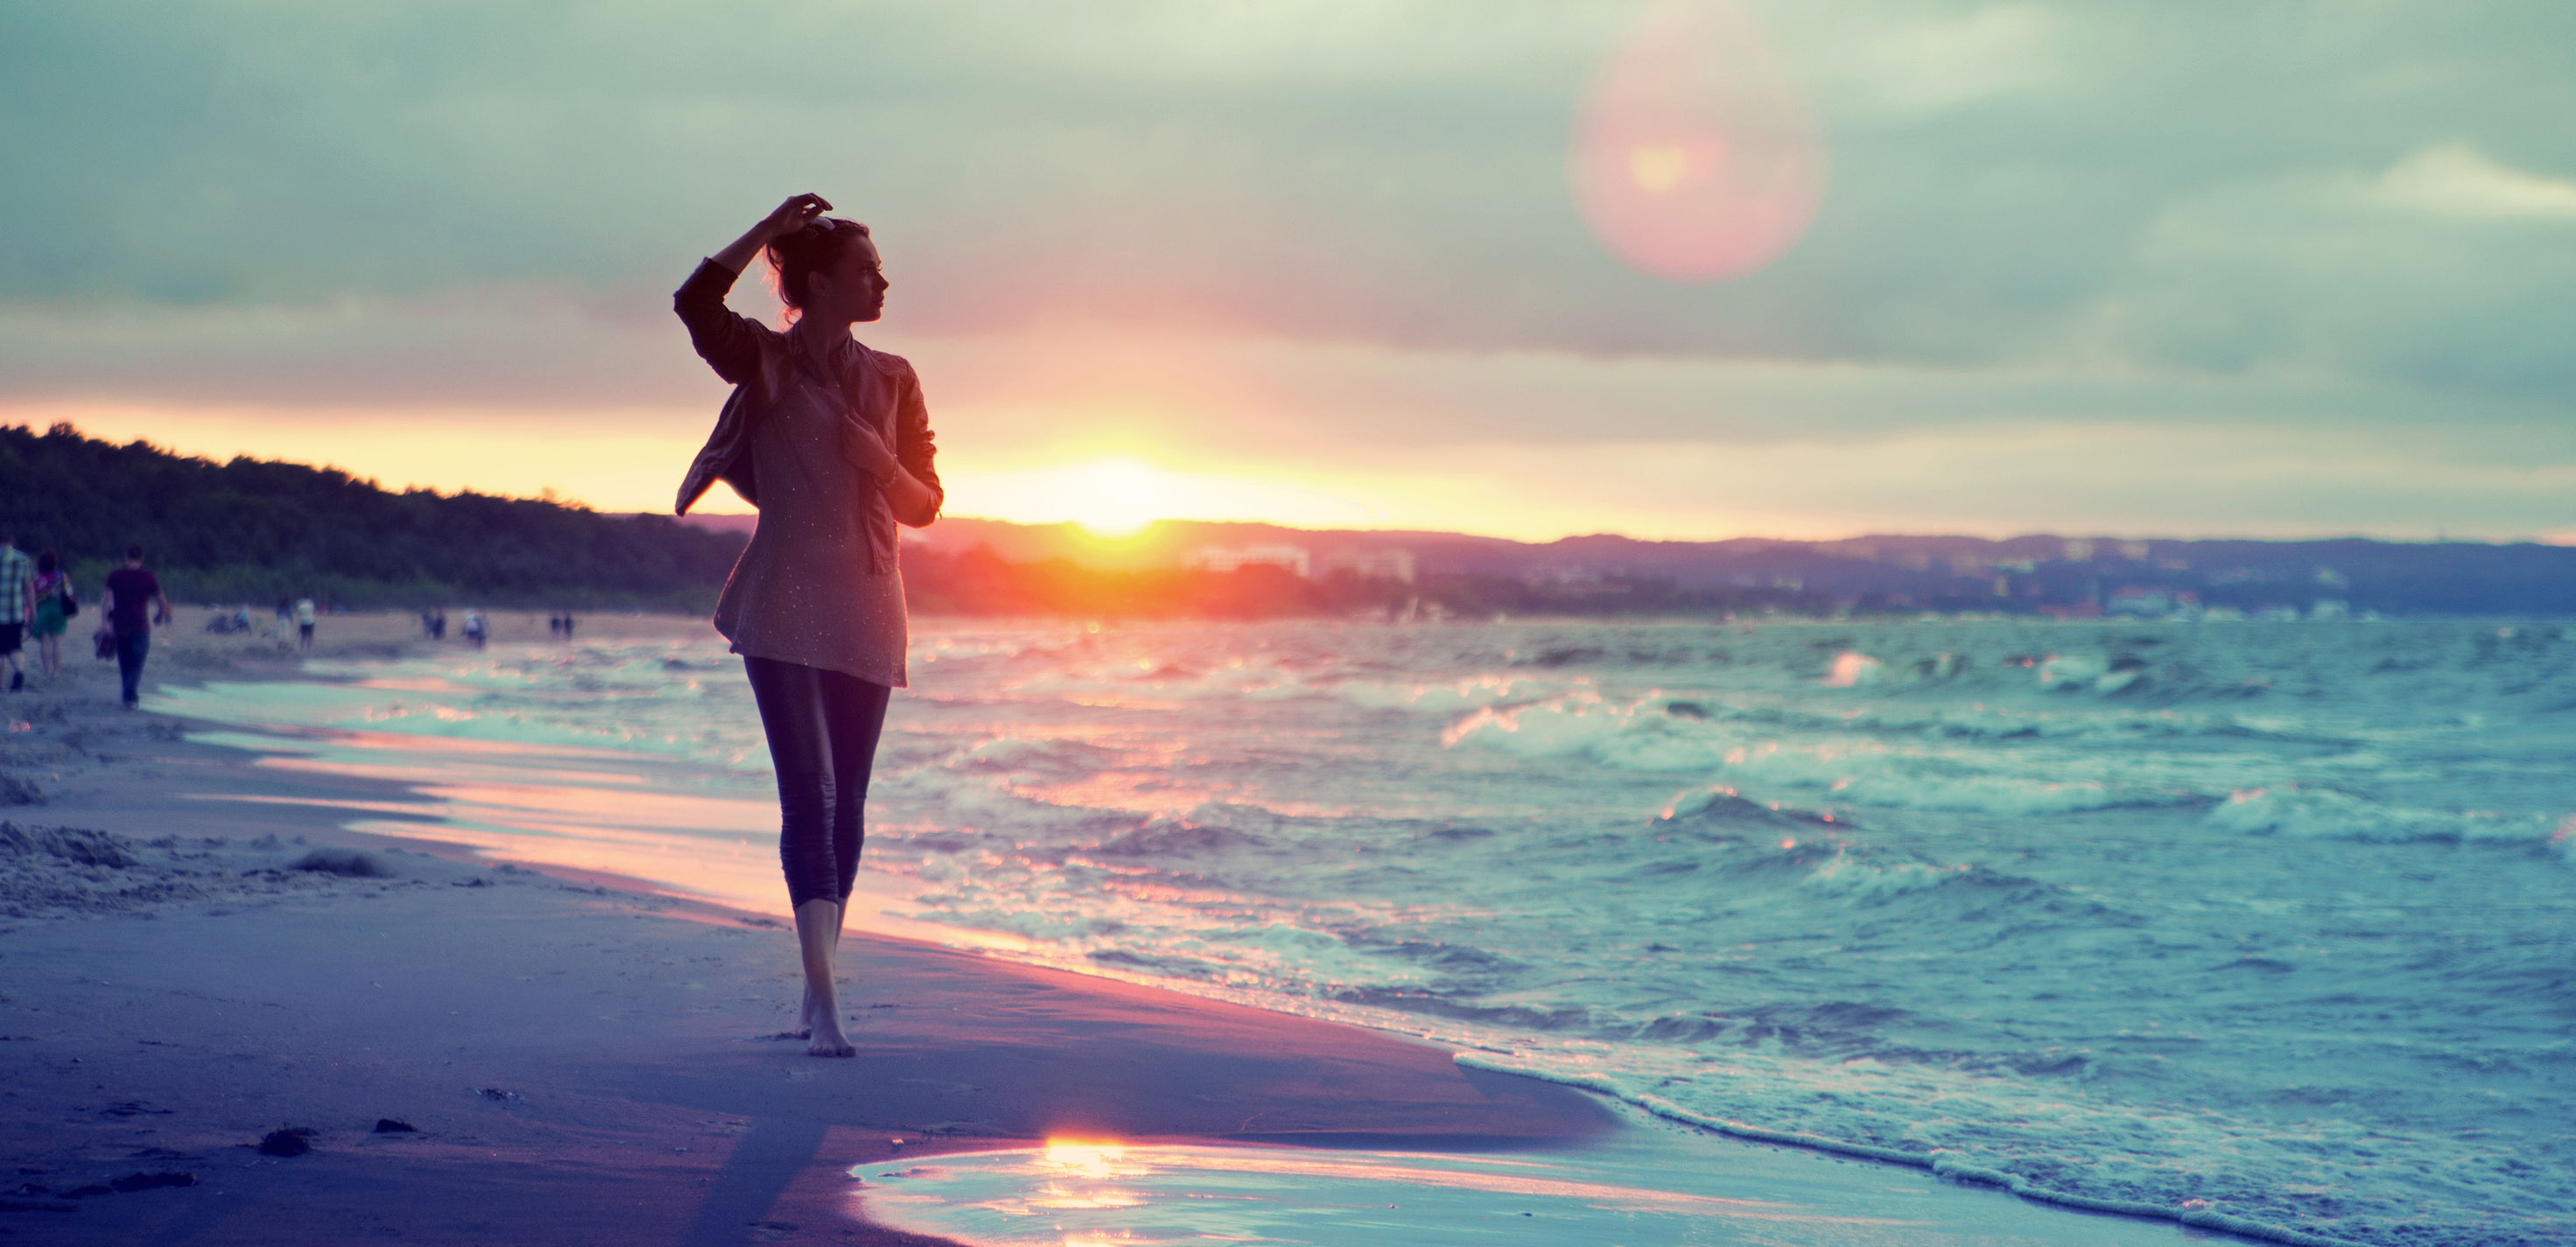 mood-girl-sand-sea-water-wave-signs-people-sun-sunset-background-wallpaper-widescreen-fullscreen-widescreen-HD-wallpapers-background